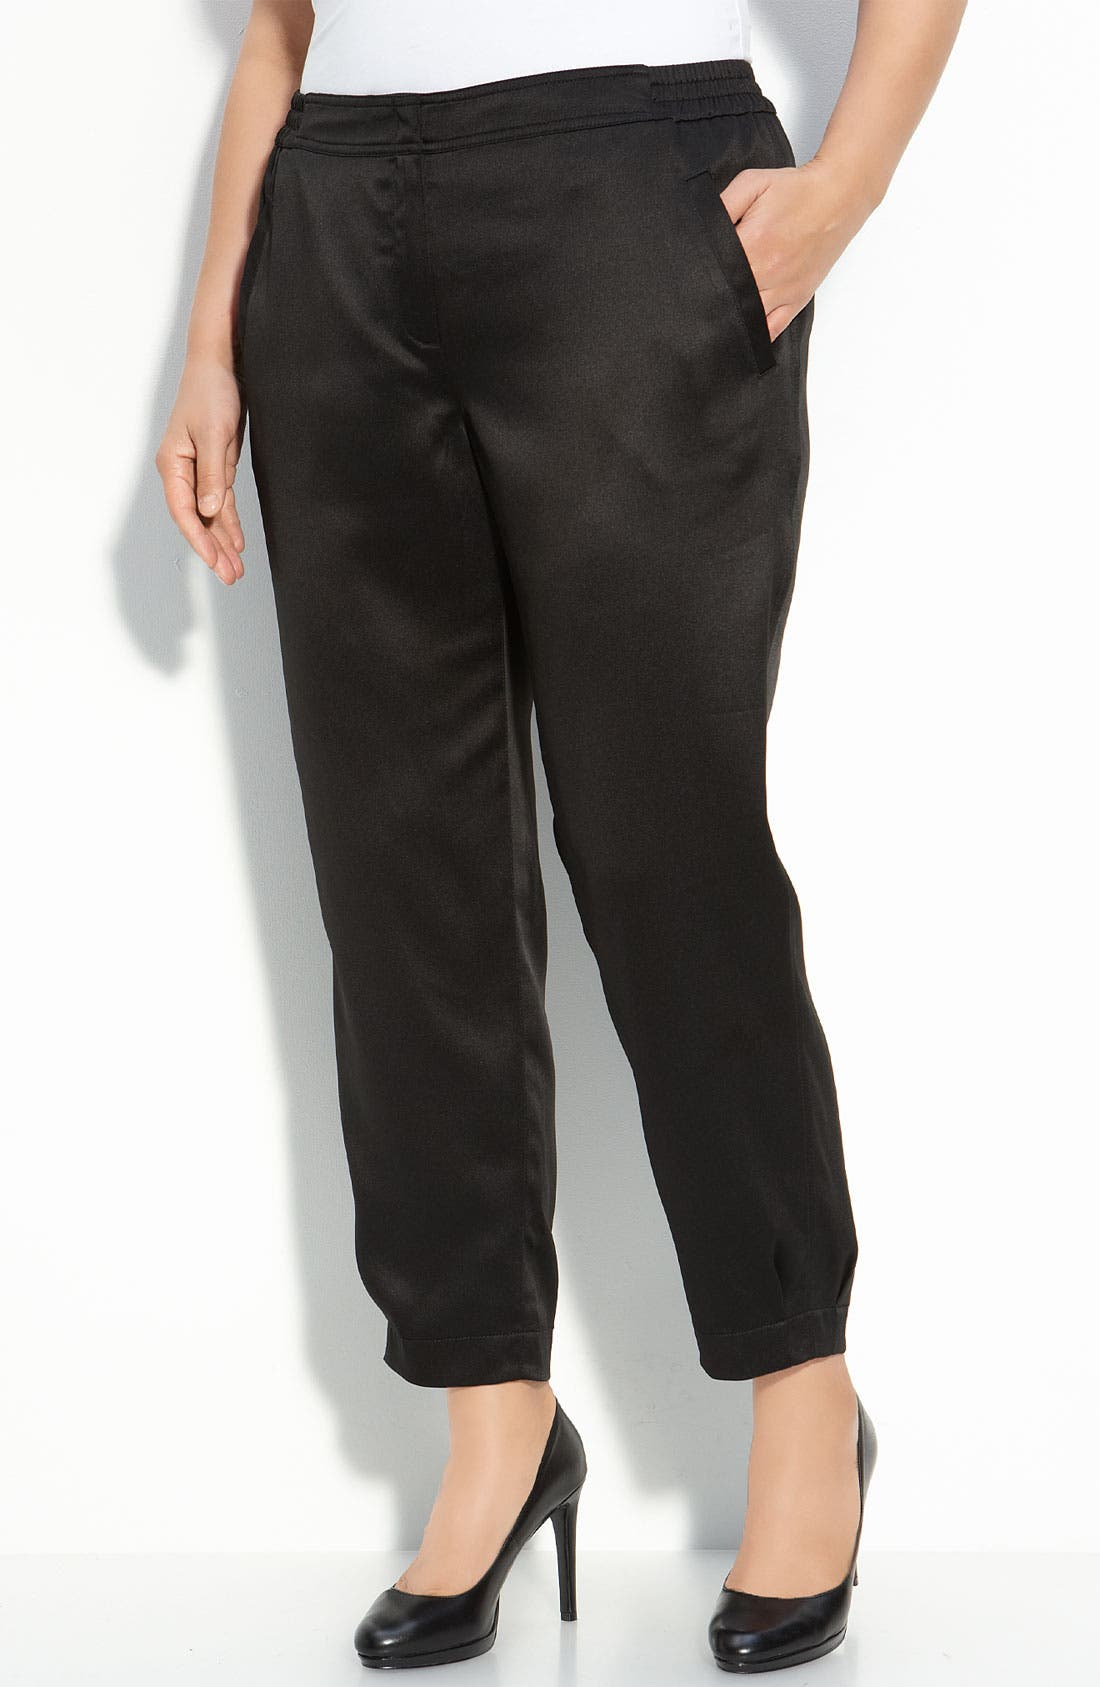 Alternate Image 1 Selected - Sejour Ankle Pants (Plus Size)